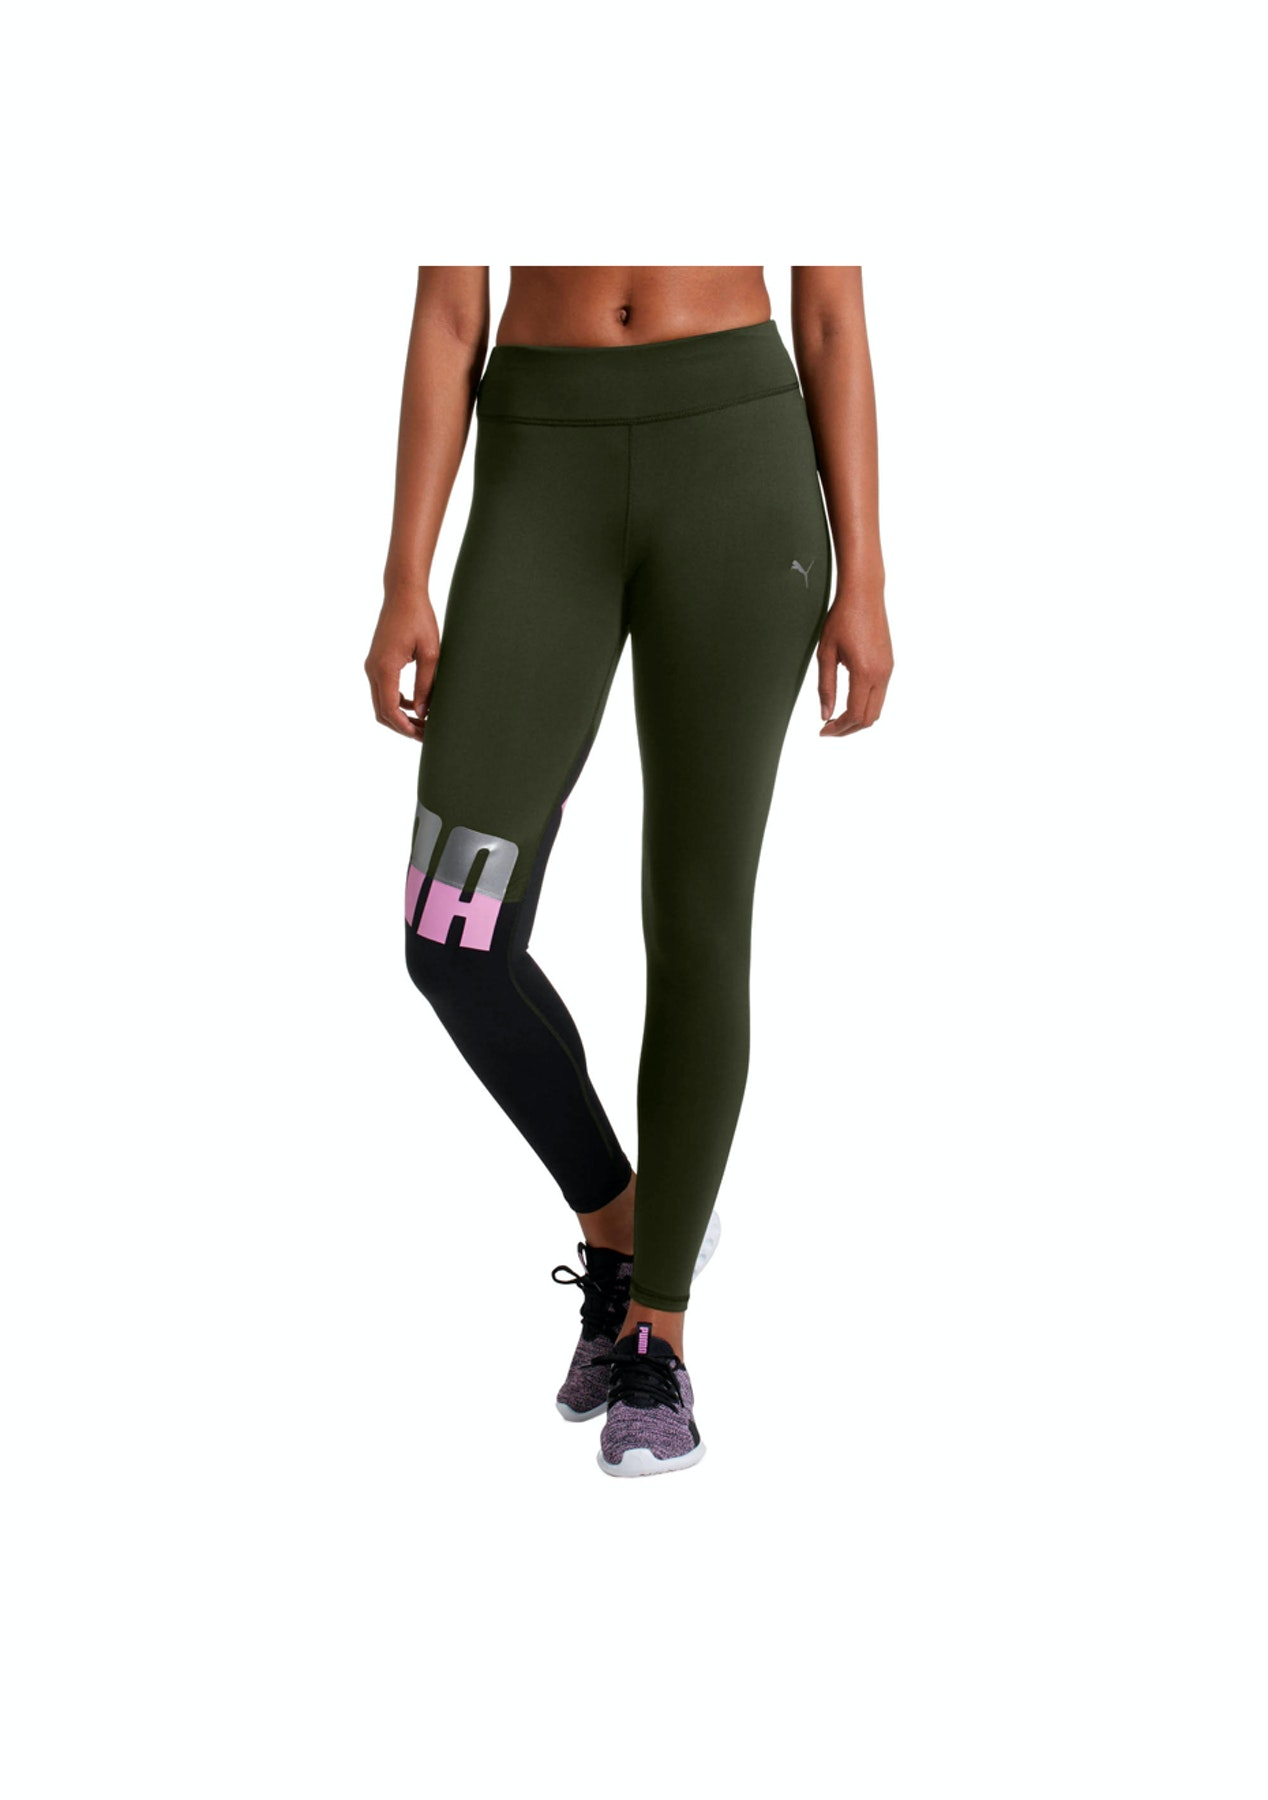 60c0cabbbc964 Puma - Womens All Me 7/8 Tight - Forest Night/Black - Puma Express Shipping  - Onceit